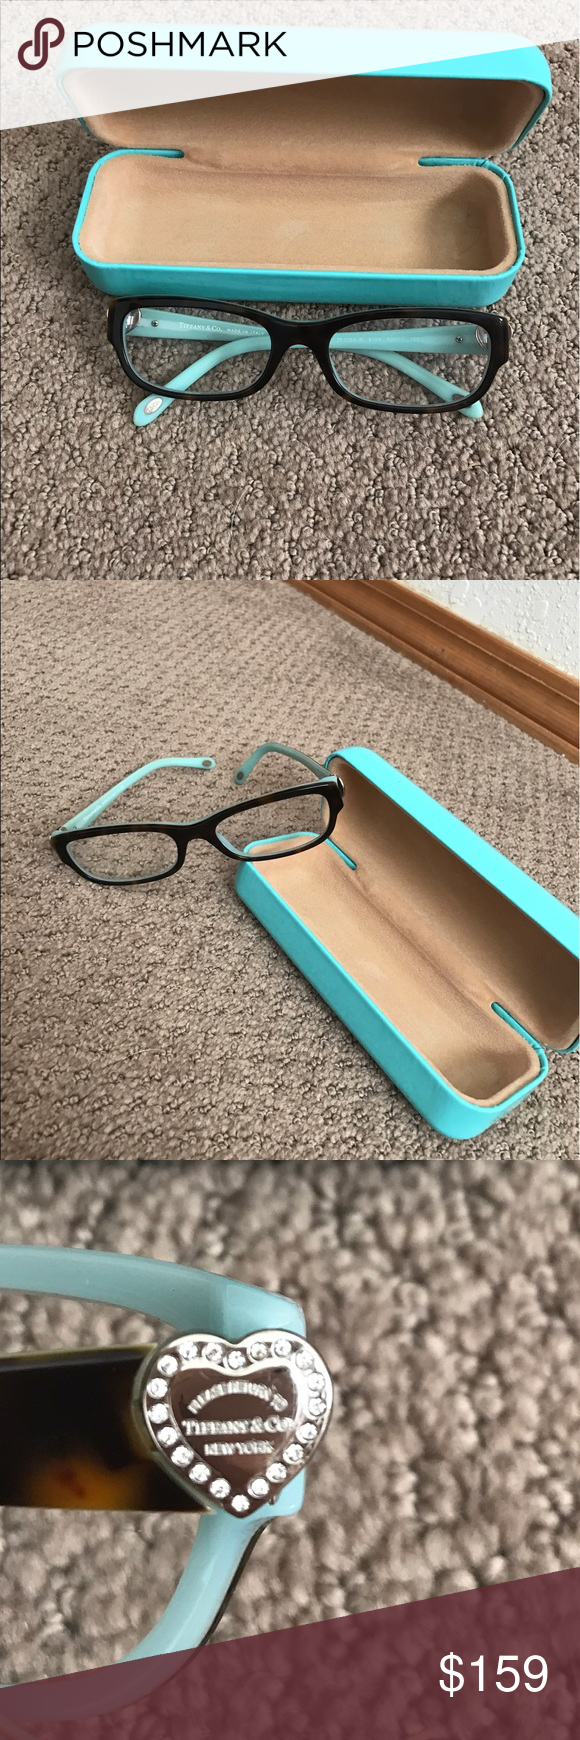 Tiffany & Co Eyeglasses 100% Authentic Tiffany & Co eyeglasses. Script can be changed! Comes with case and soft pouch. Beautiful brown tortoise shell color with rhinestones on the side! All intact . Smoke free home Tiffany & Co. Accessories Glasses